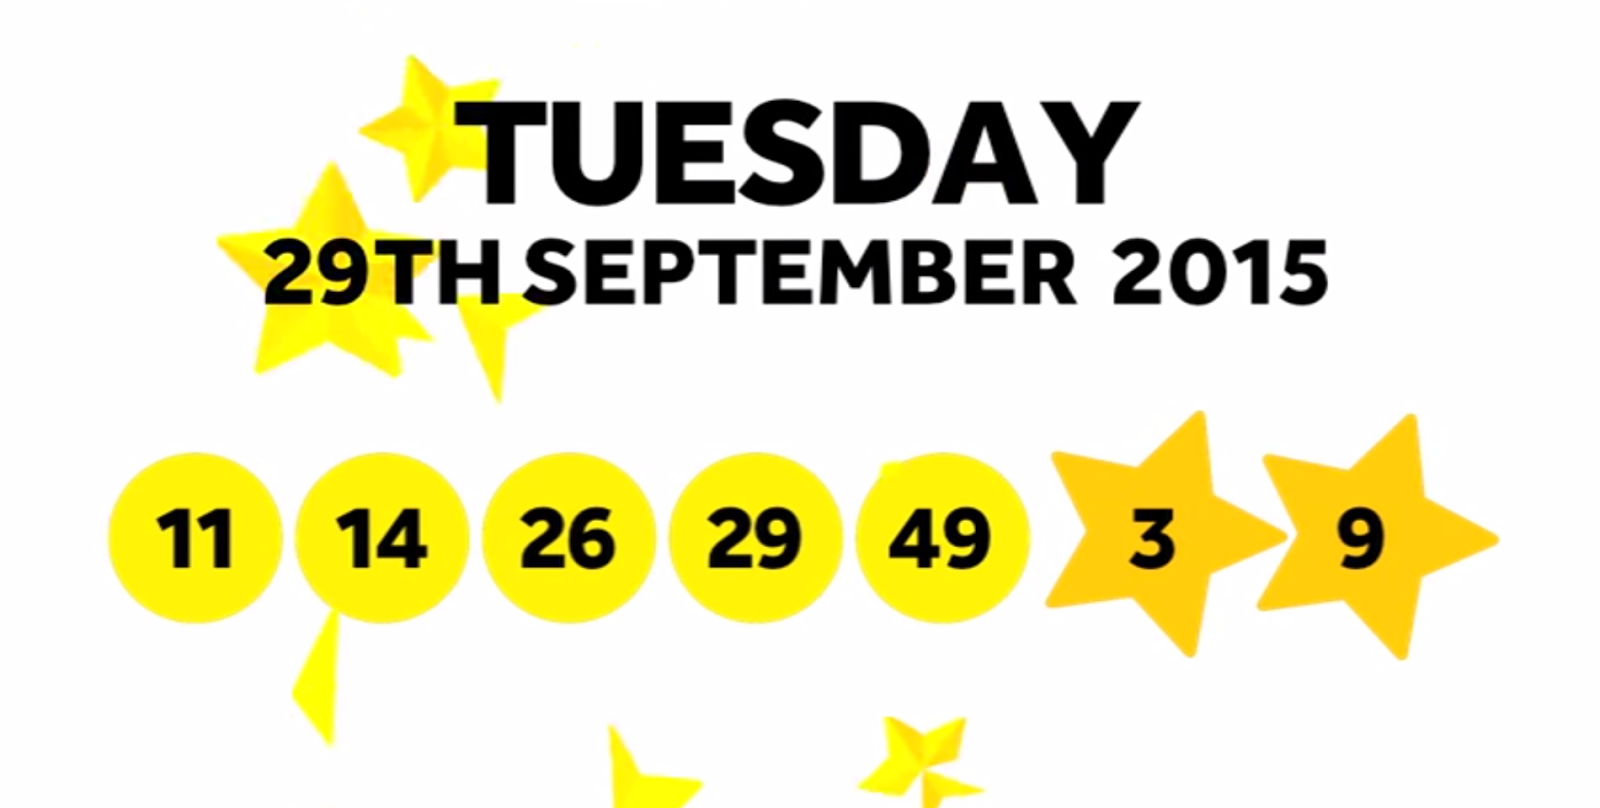 The National Lottery Tuesday 'EuroMillions' draw results from 29th September 2015: 11,14,26,29,49, Lucky Stars: 3,9